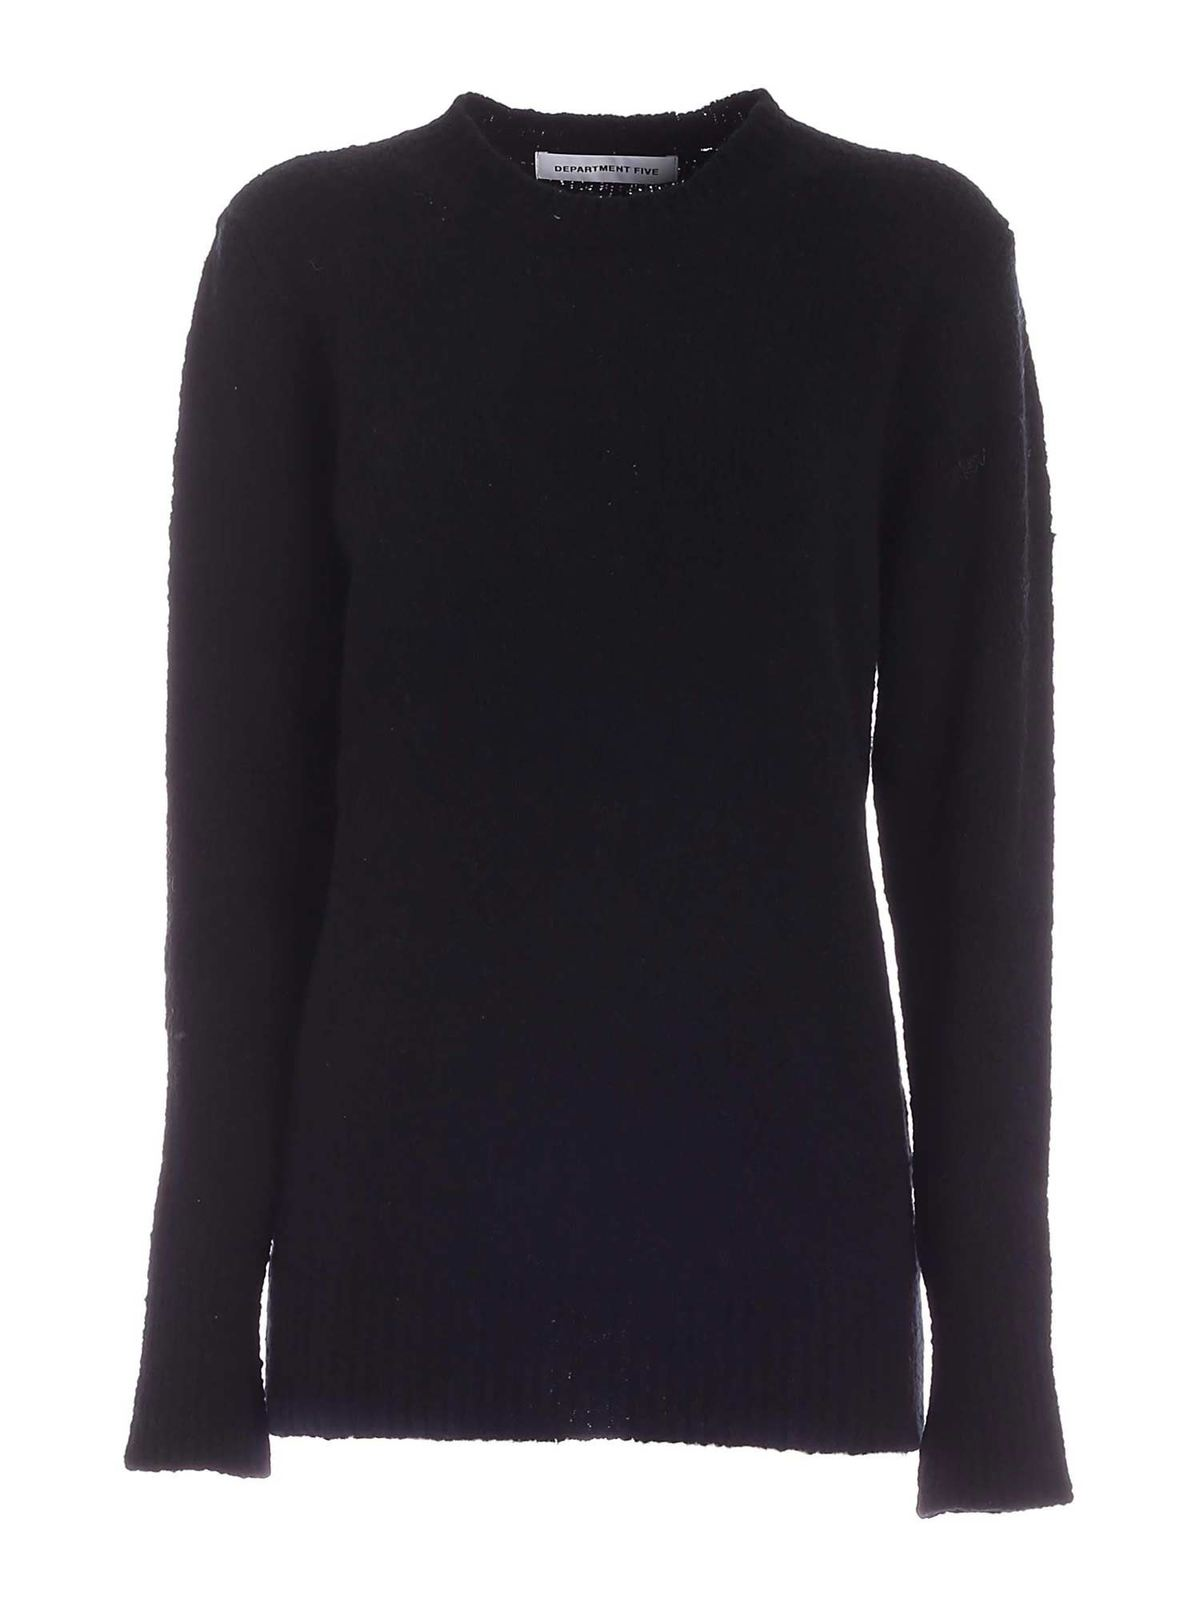 Department 5 MERINOS AND CASHMERE PULLOVER IN BLACK